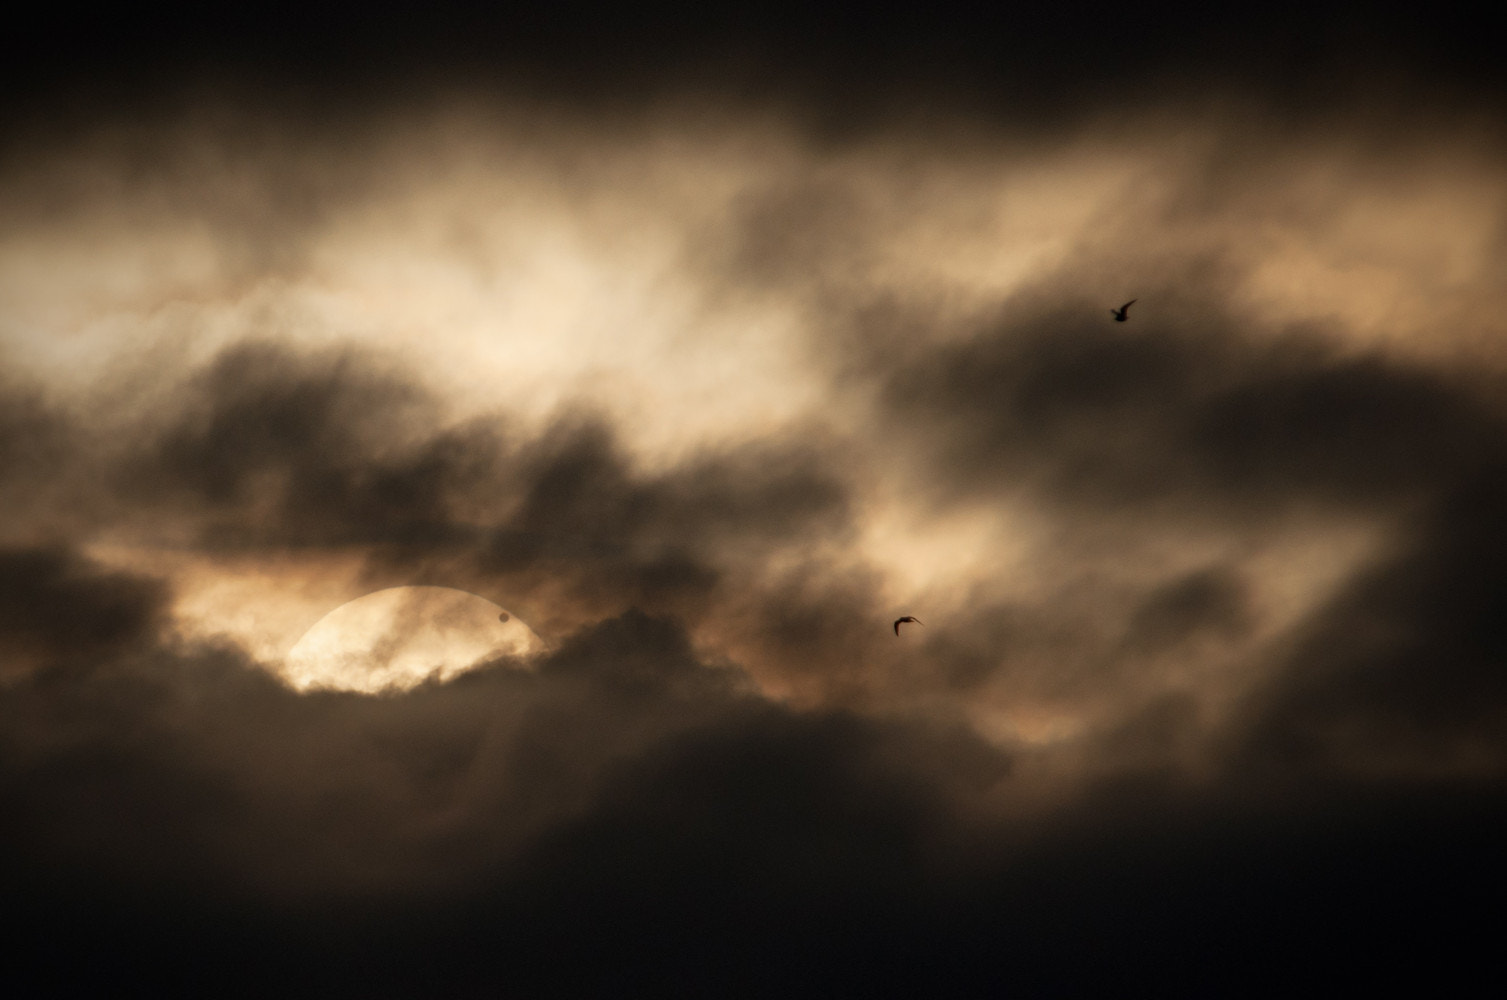 Photograph Transit of Venus 2012 by Andrew Steele on 500px